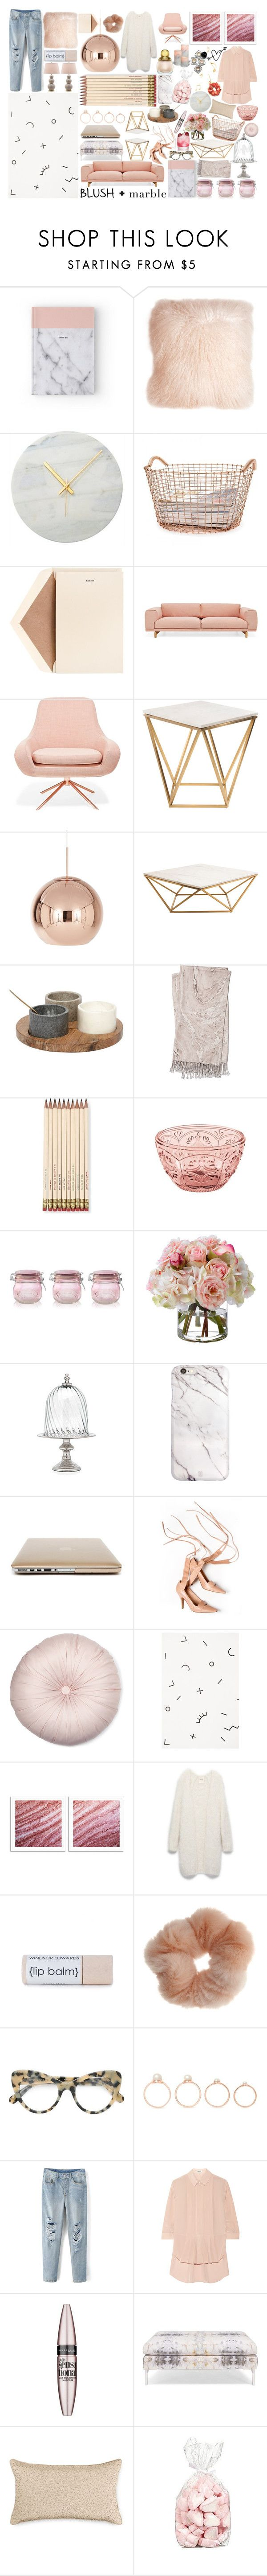 """Blush + Marble"" by miica-olavarria ❤ liked on Polyvore featuring interior, interiors, interior design, home, home decor, interior decorating, Pillow Decor, Korbo, Dempsey & Carroll and Muuto"